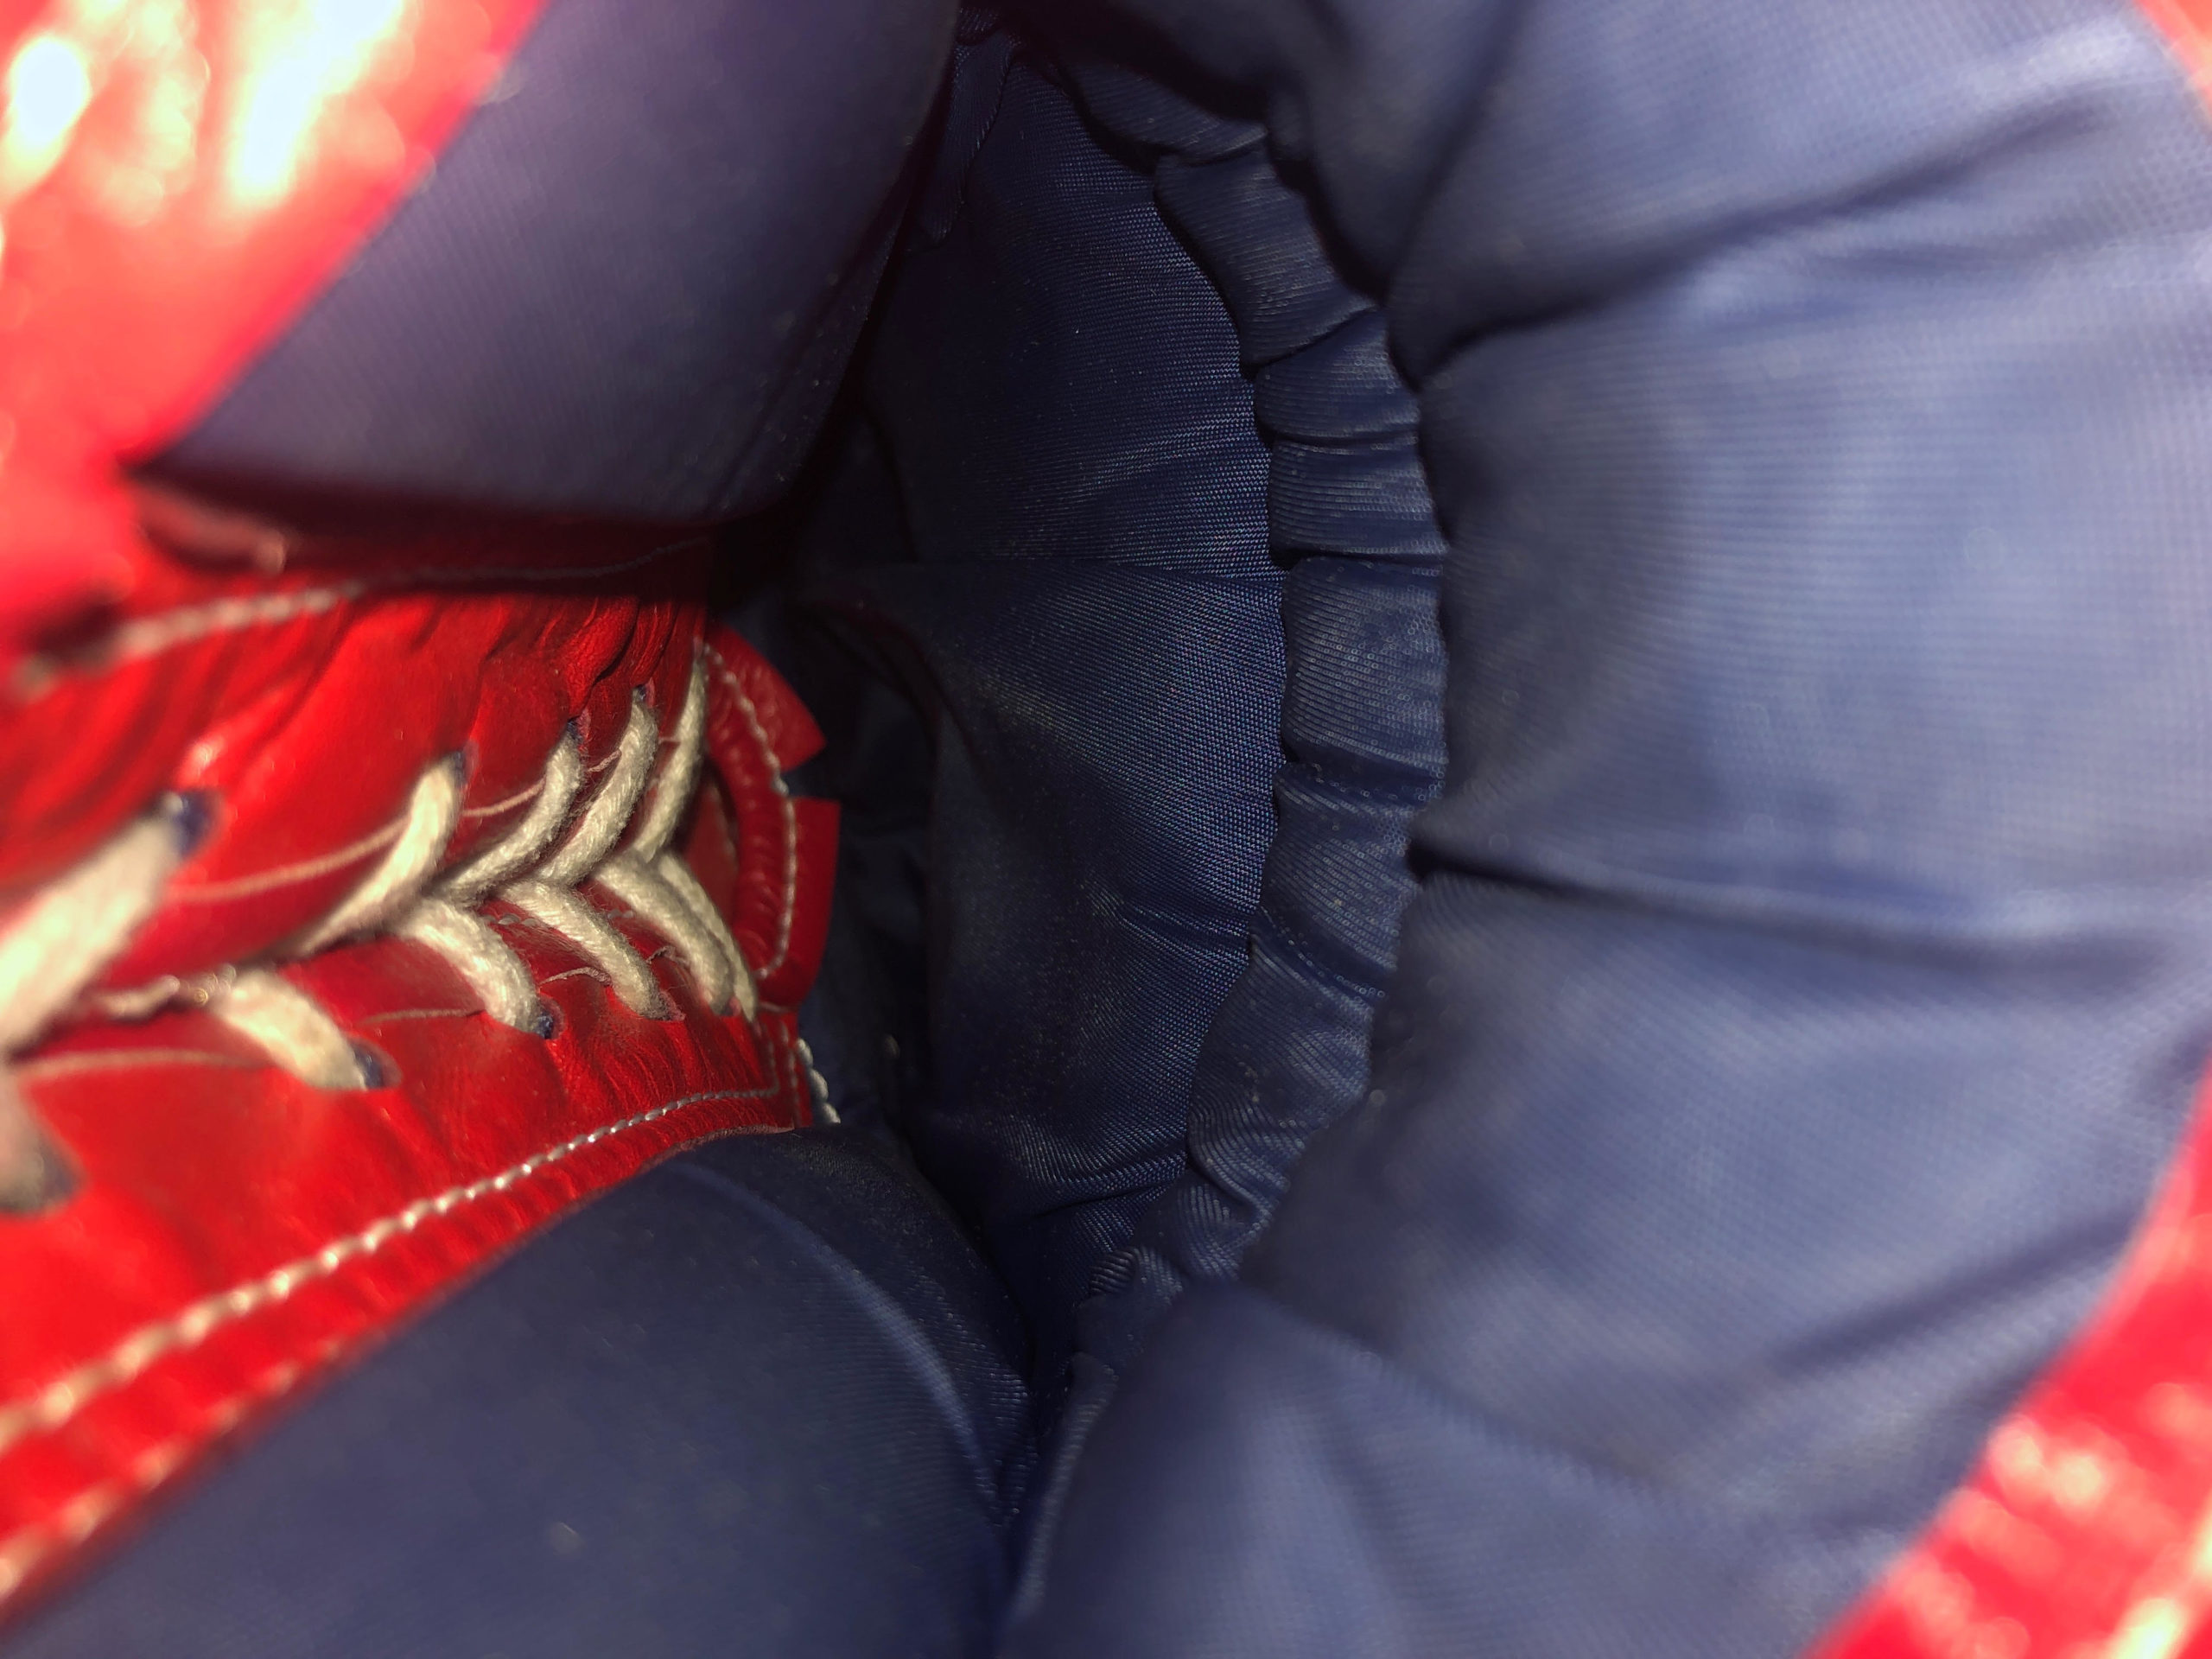 Extreme close up photo of the inside of a boxing glove with red and blue fabric and laces.